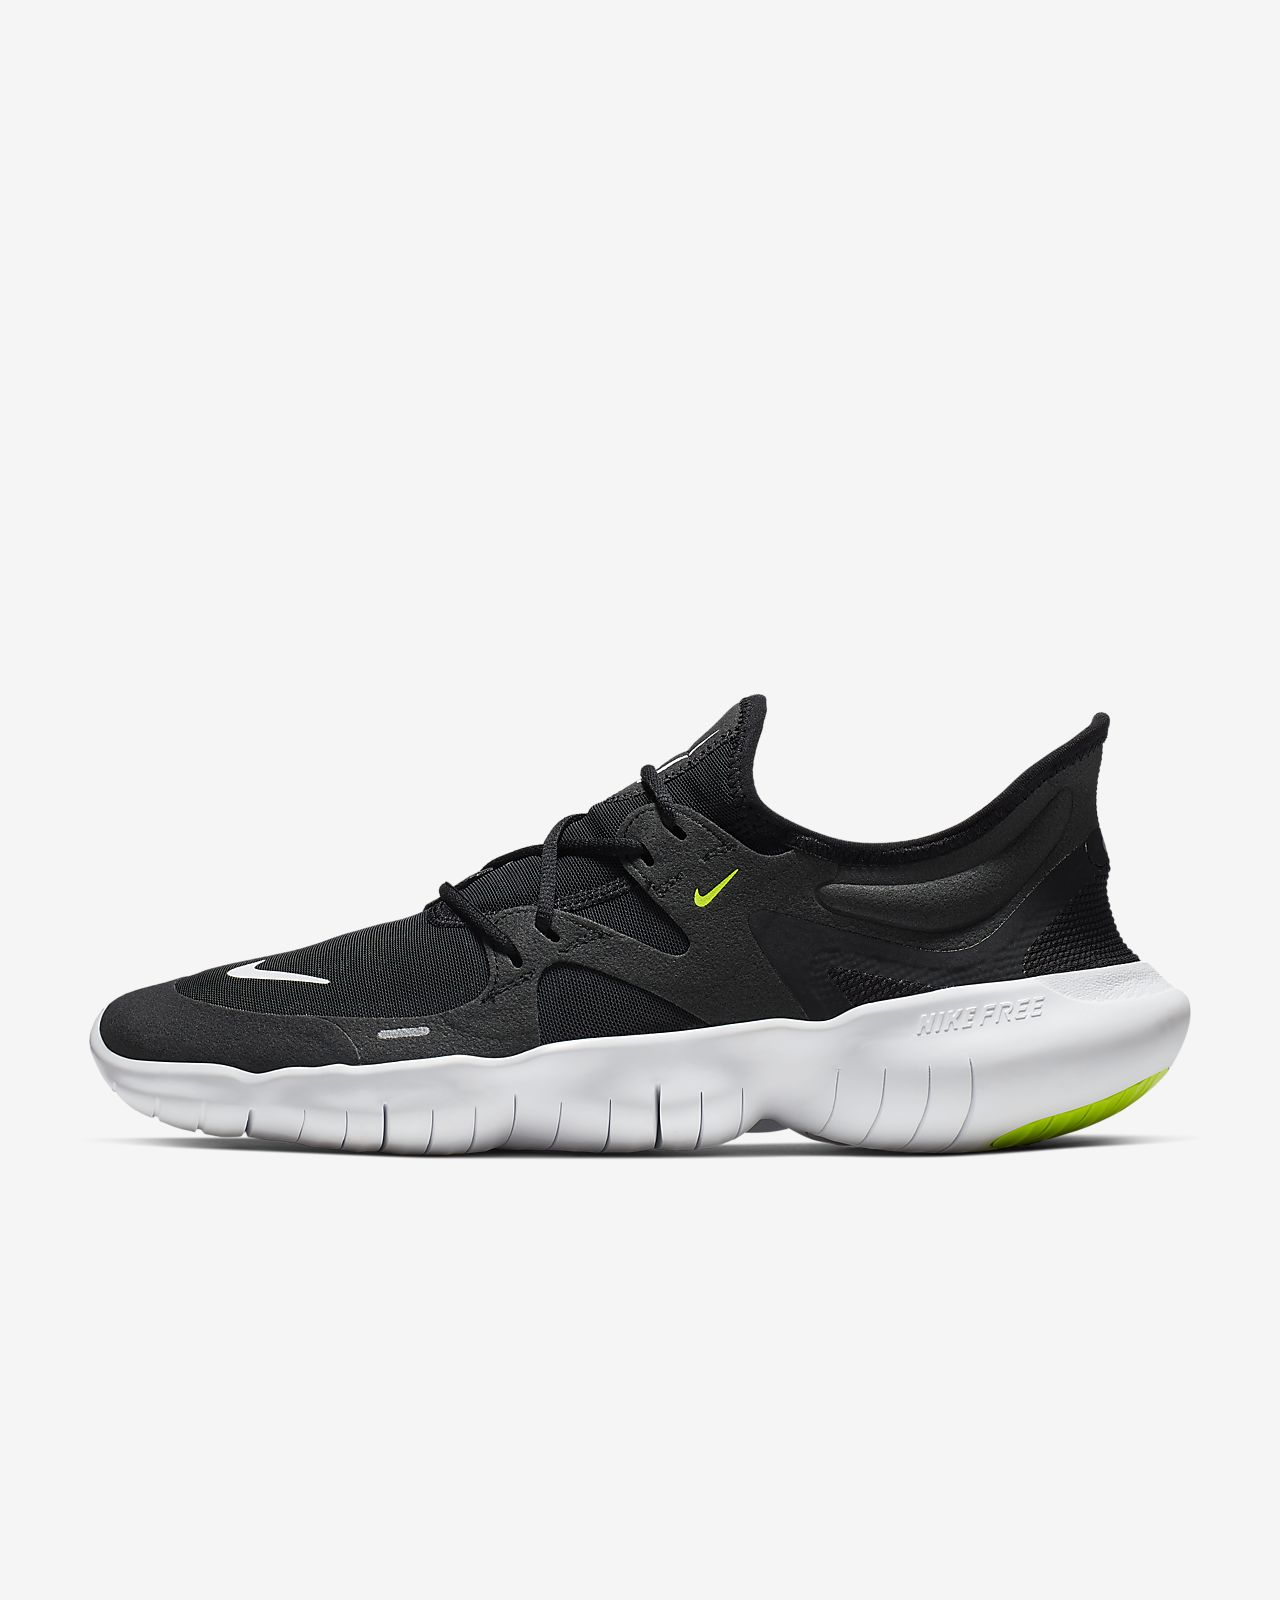 fed9a390c2d0 Nike Free RN 5.0 Men s Running Shoe. Nike.com BE